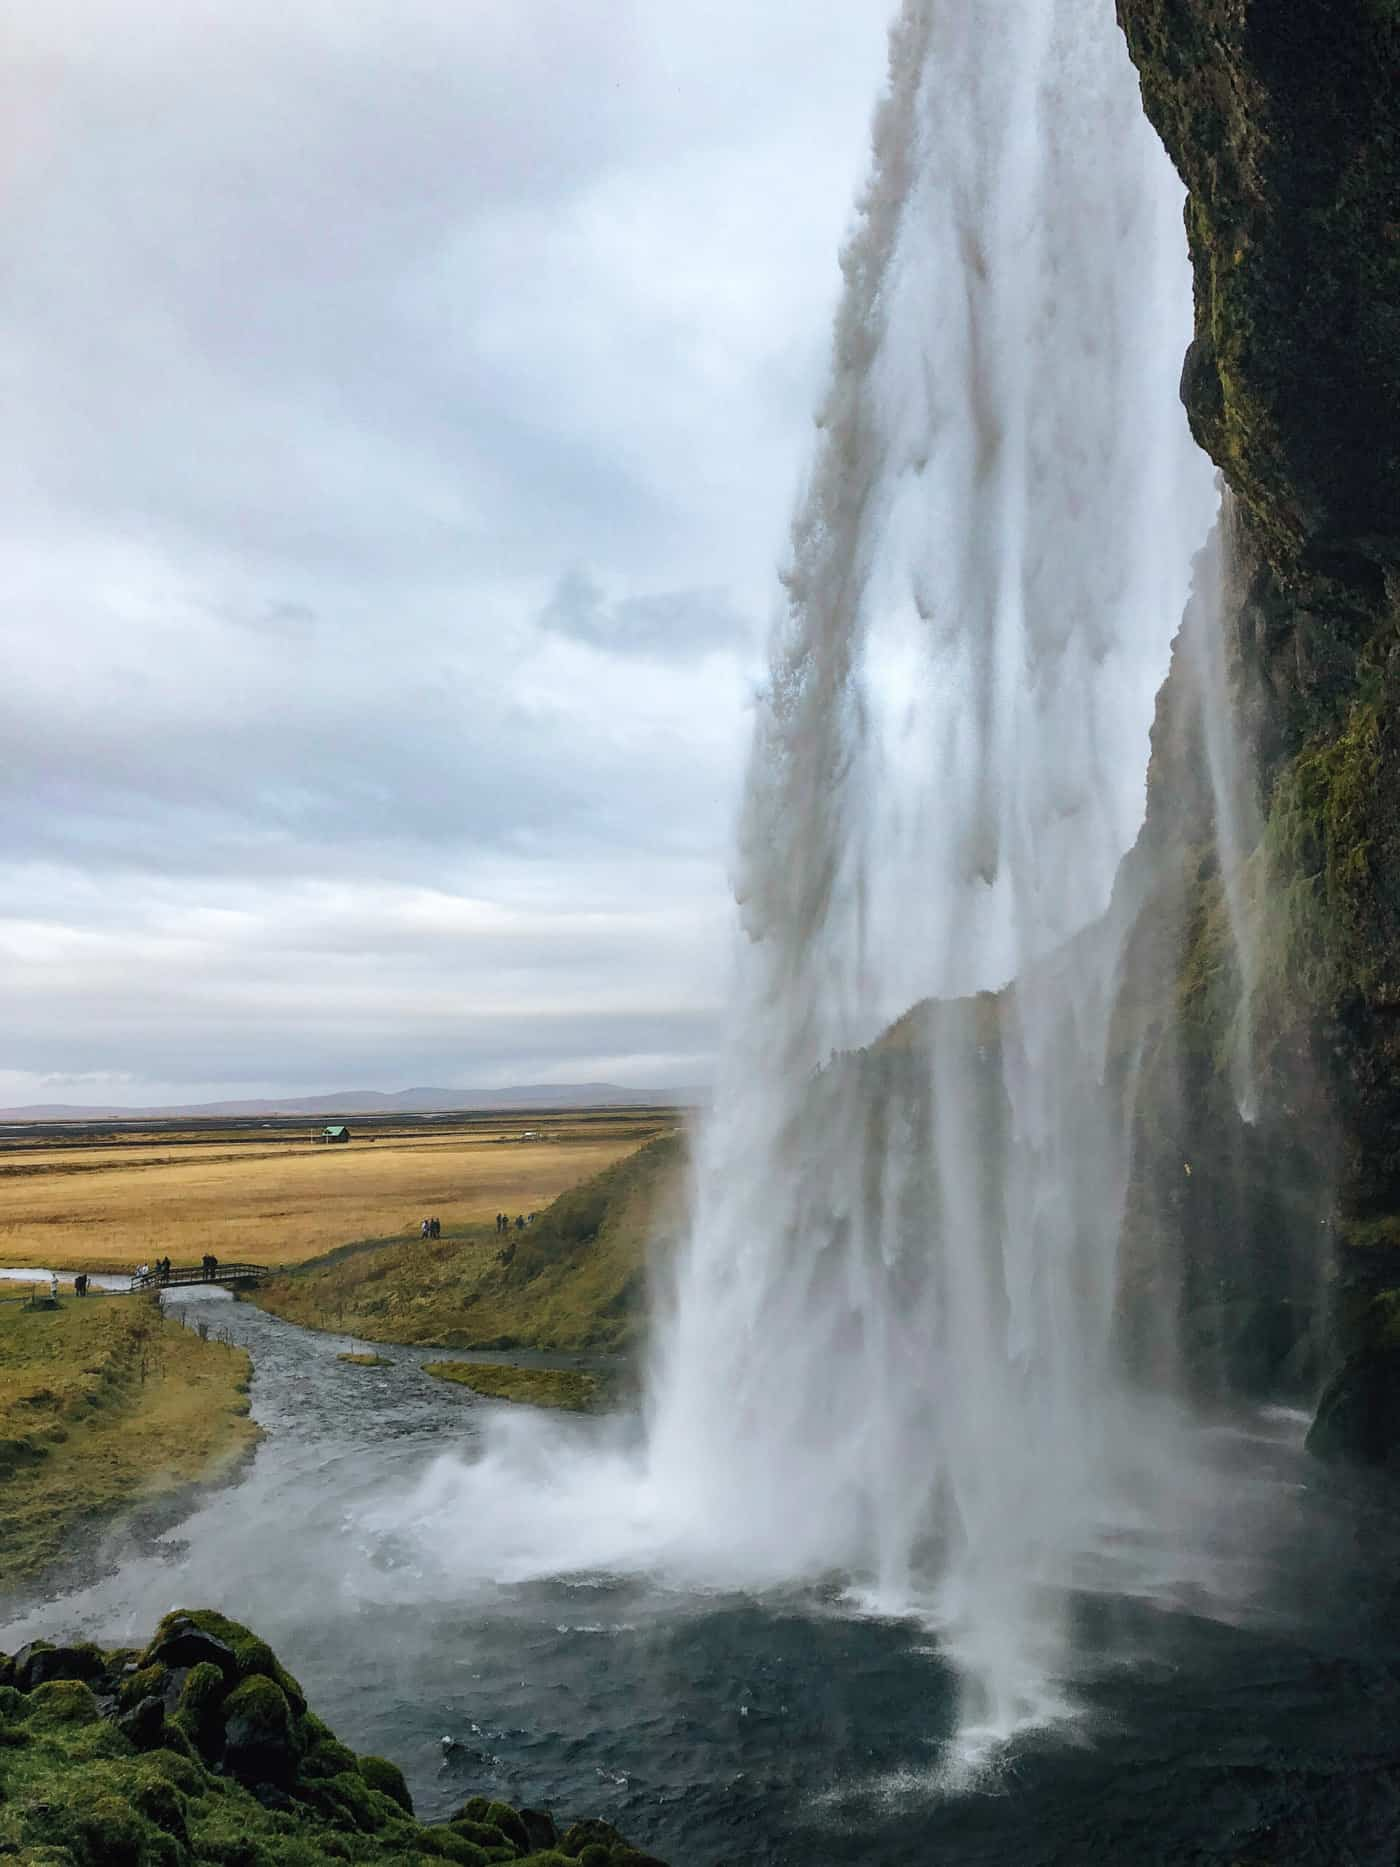 Walking behind Seljalandsfoss waterfall on the south coast of iceland